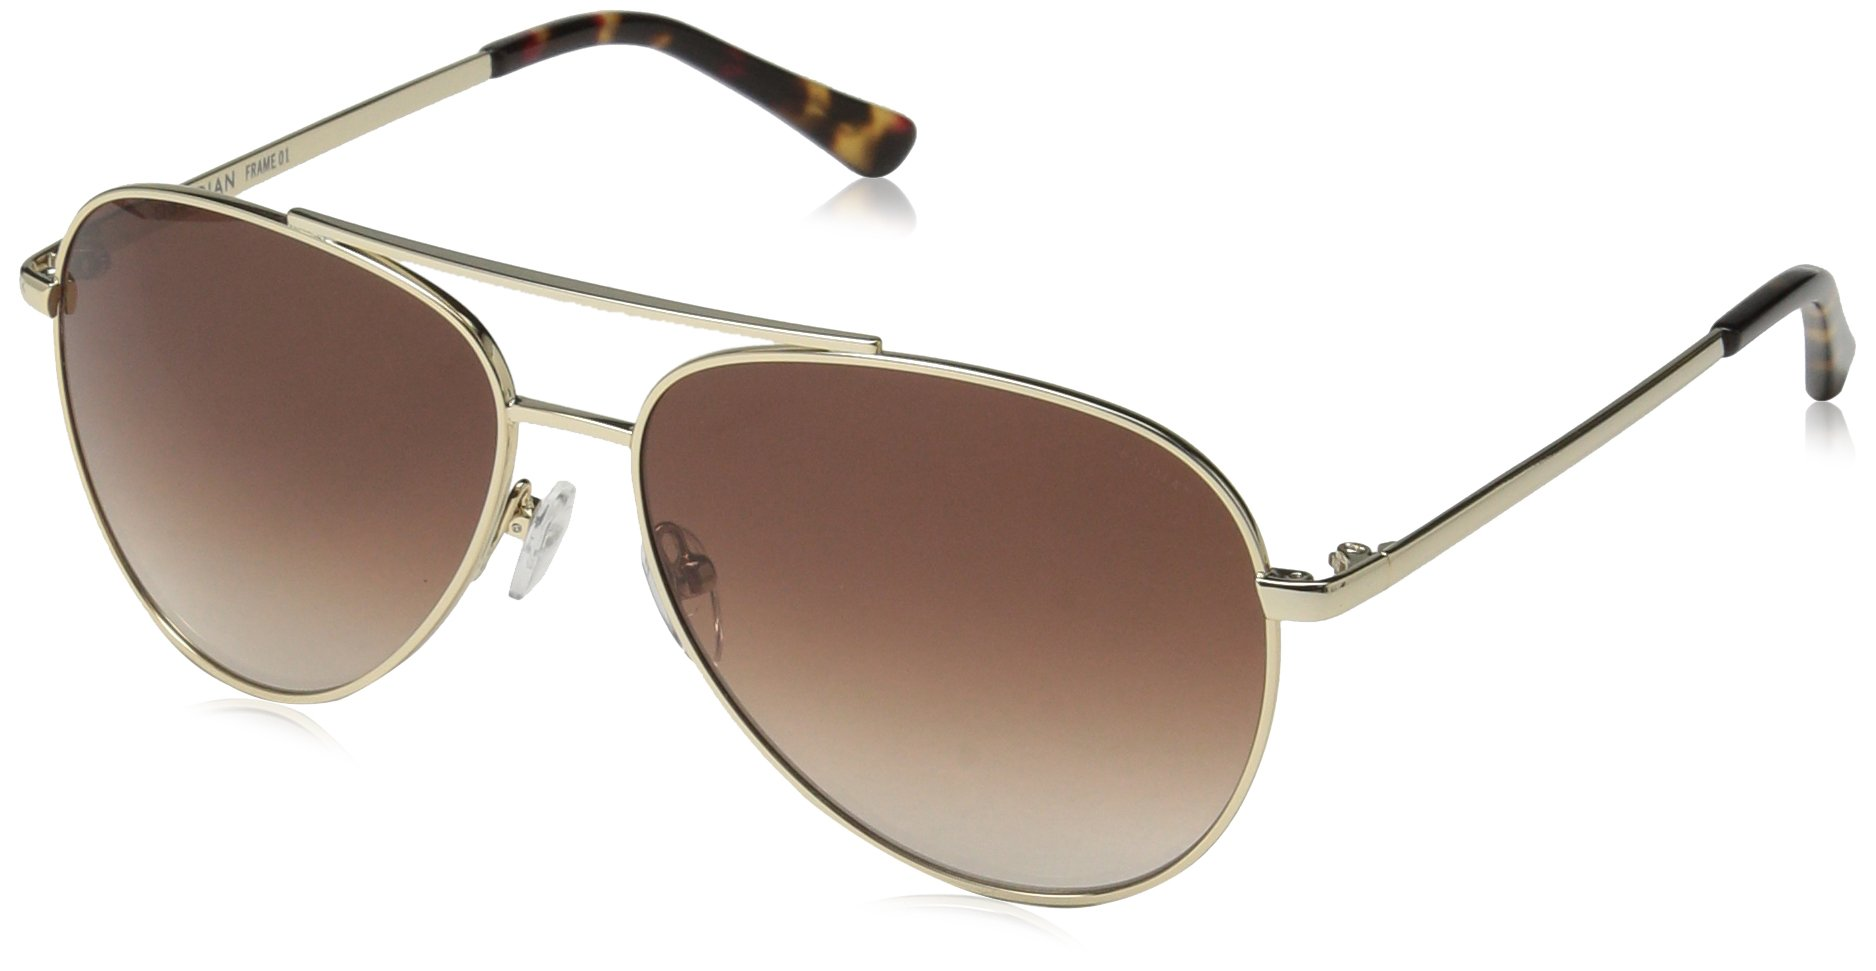 Obsidian Sunglasses for Women or Men Aviator Frame 01, Gold, 58 mm by Obsidian Sunglasses